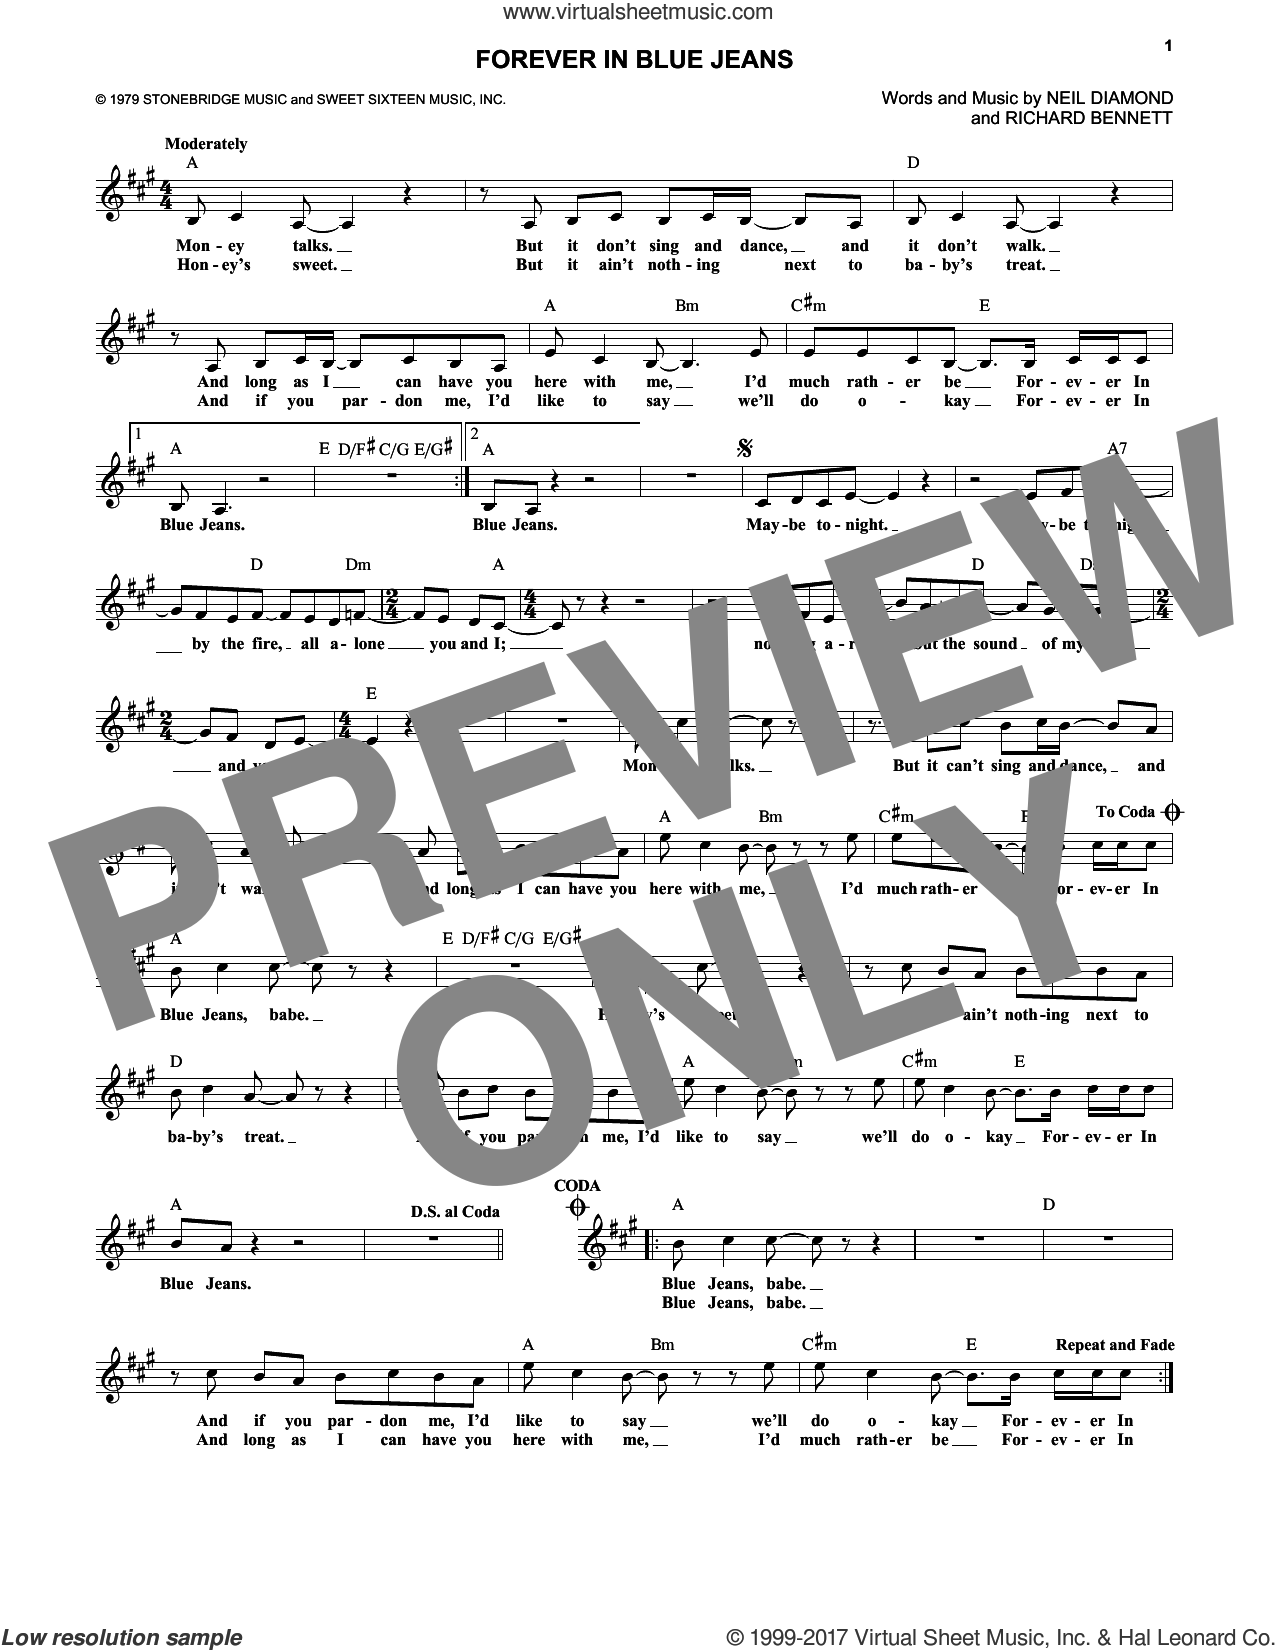 Forever In Blue Jeans sheet music for voice and other instruments (fake book) by Neil Diamond and Richard Bennett, intermediate